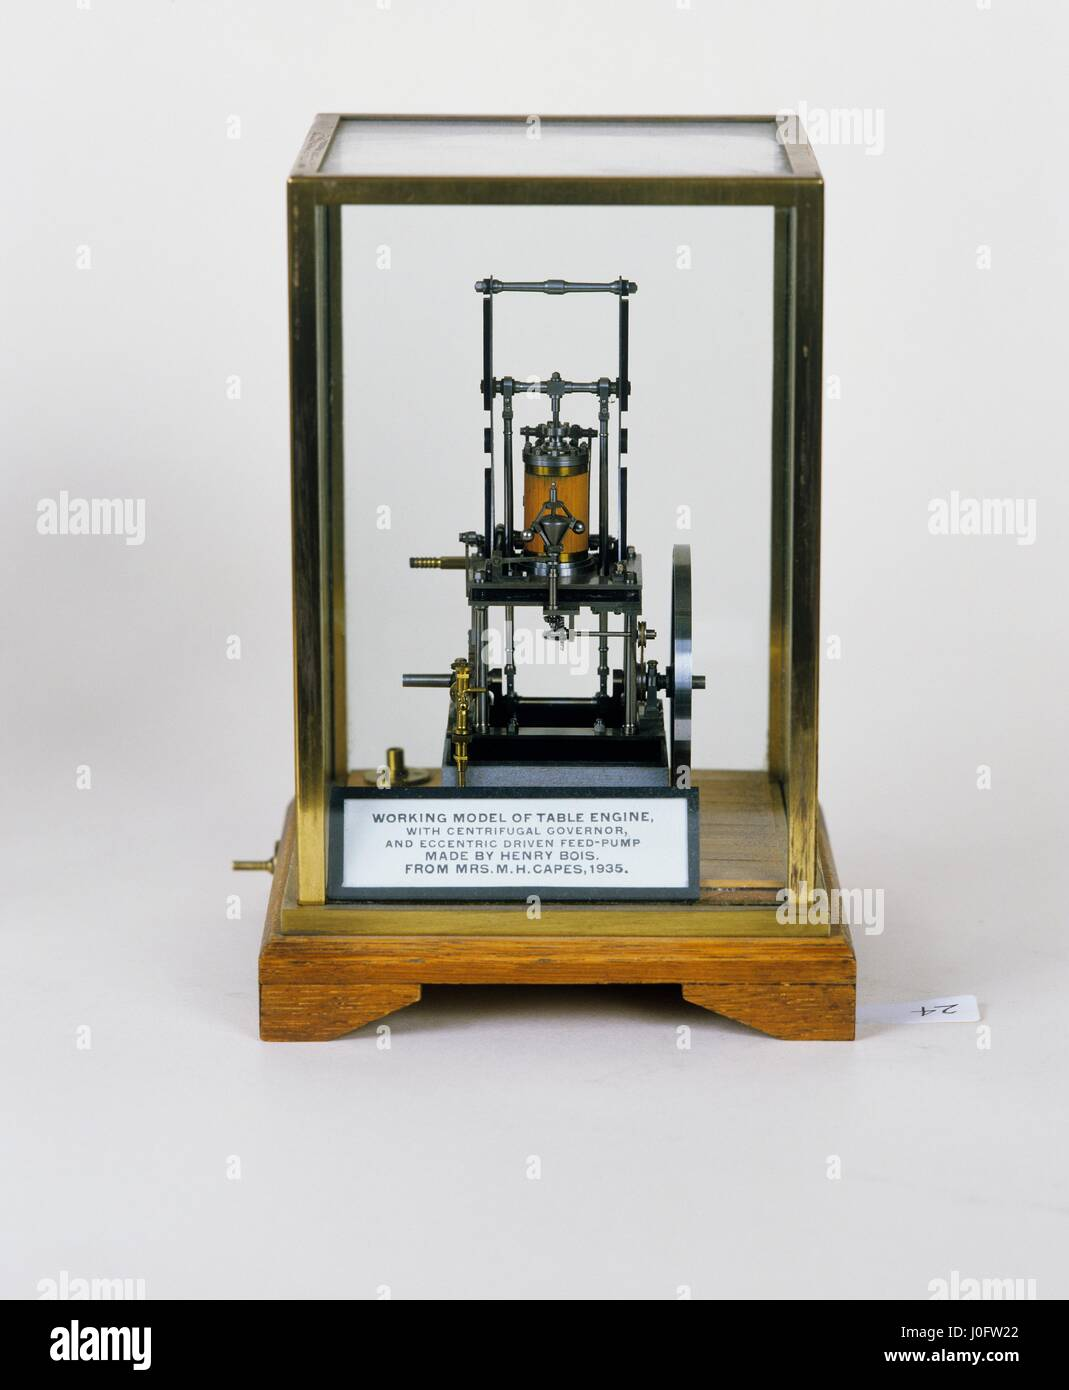 Marine table engine ST2 with centrifugal governor and eccentric driven feed-pump - Stock Image